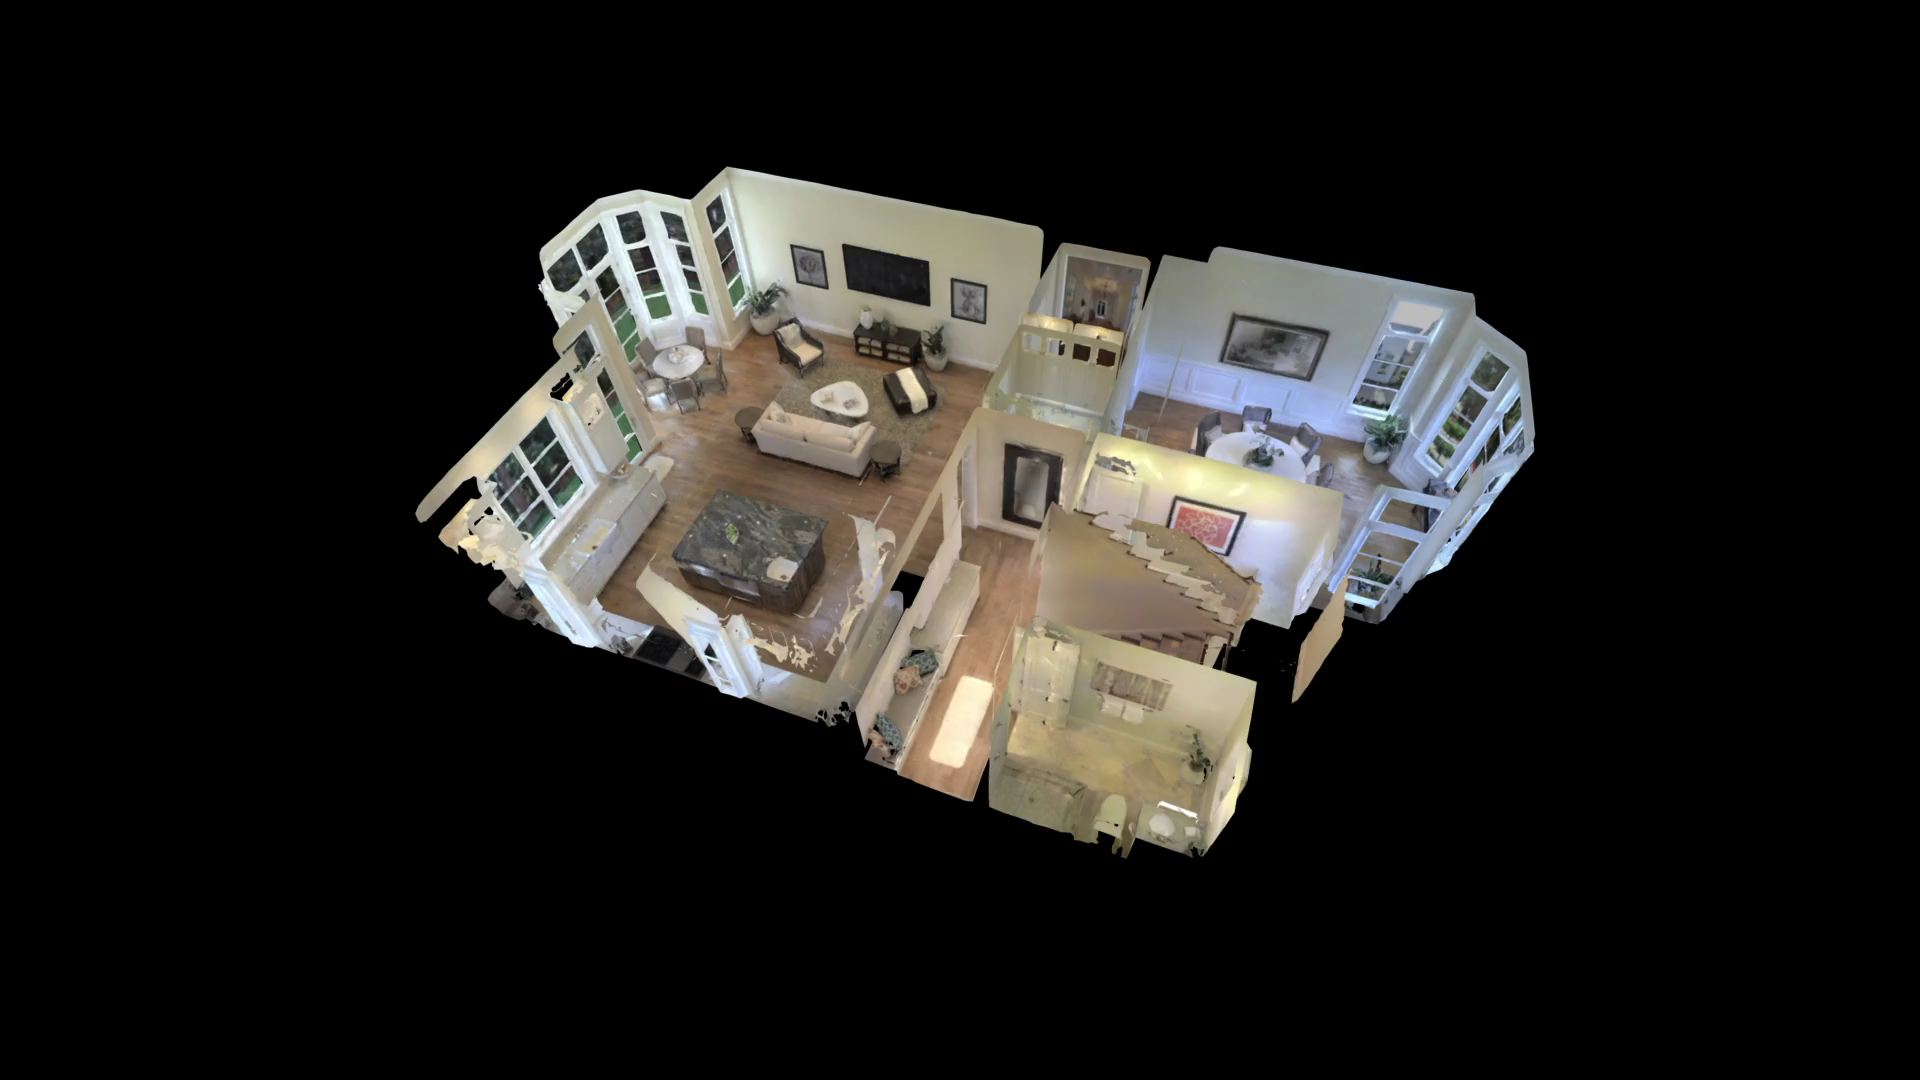 Matterport debuts cloud-based platform for 3D models of